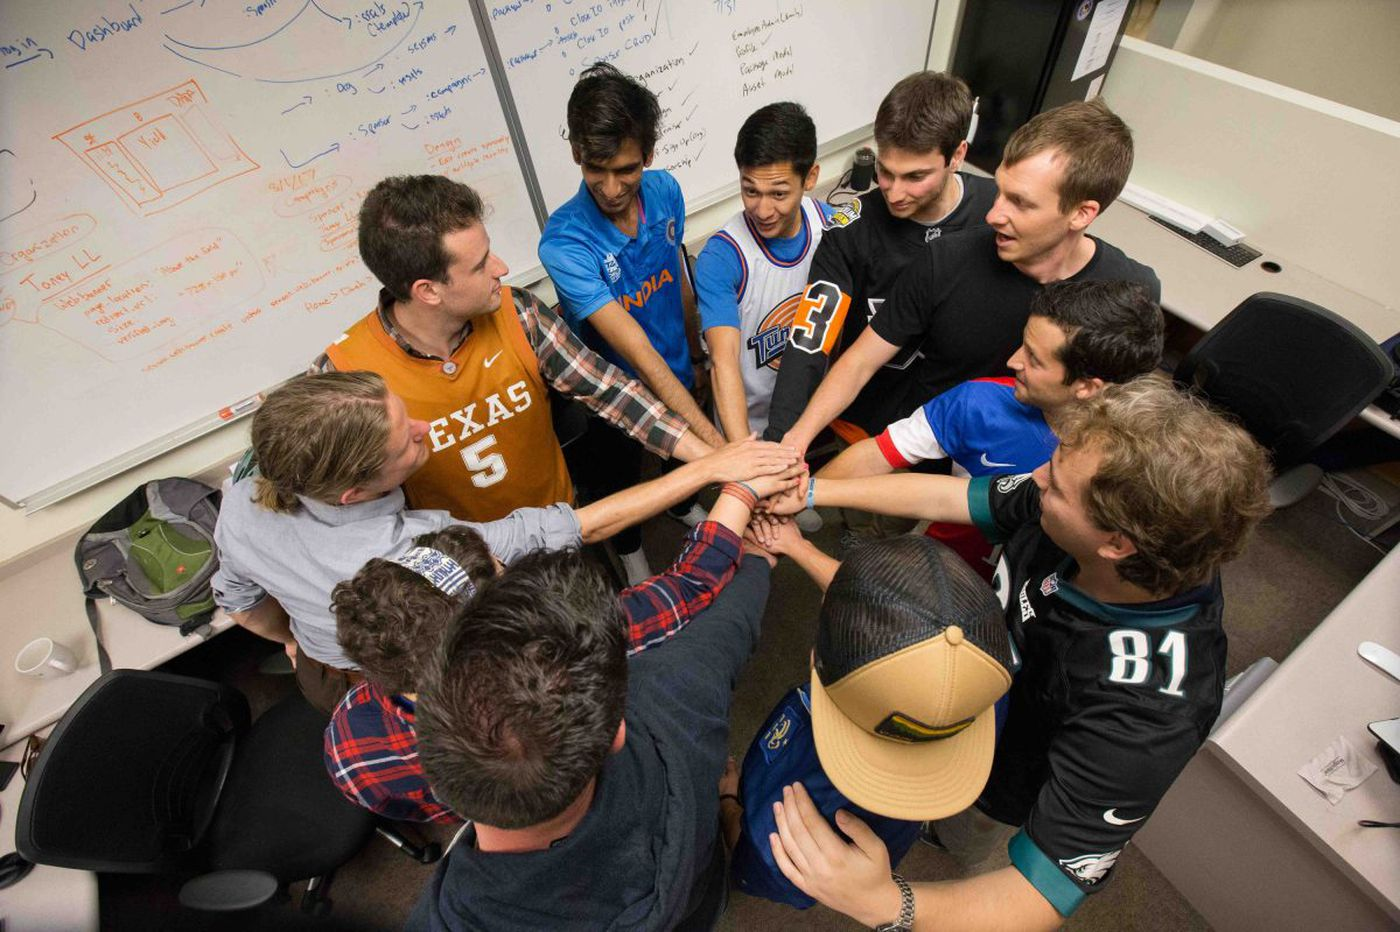 How the start-up LeagueSide aims to fund and shake up youth sports